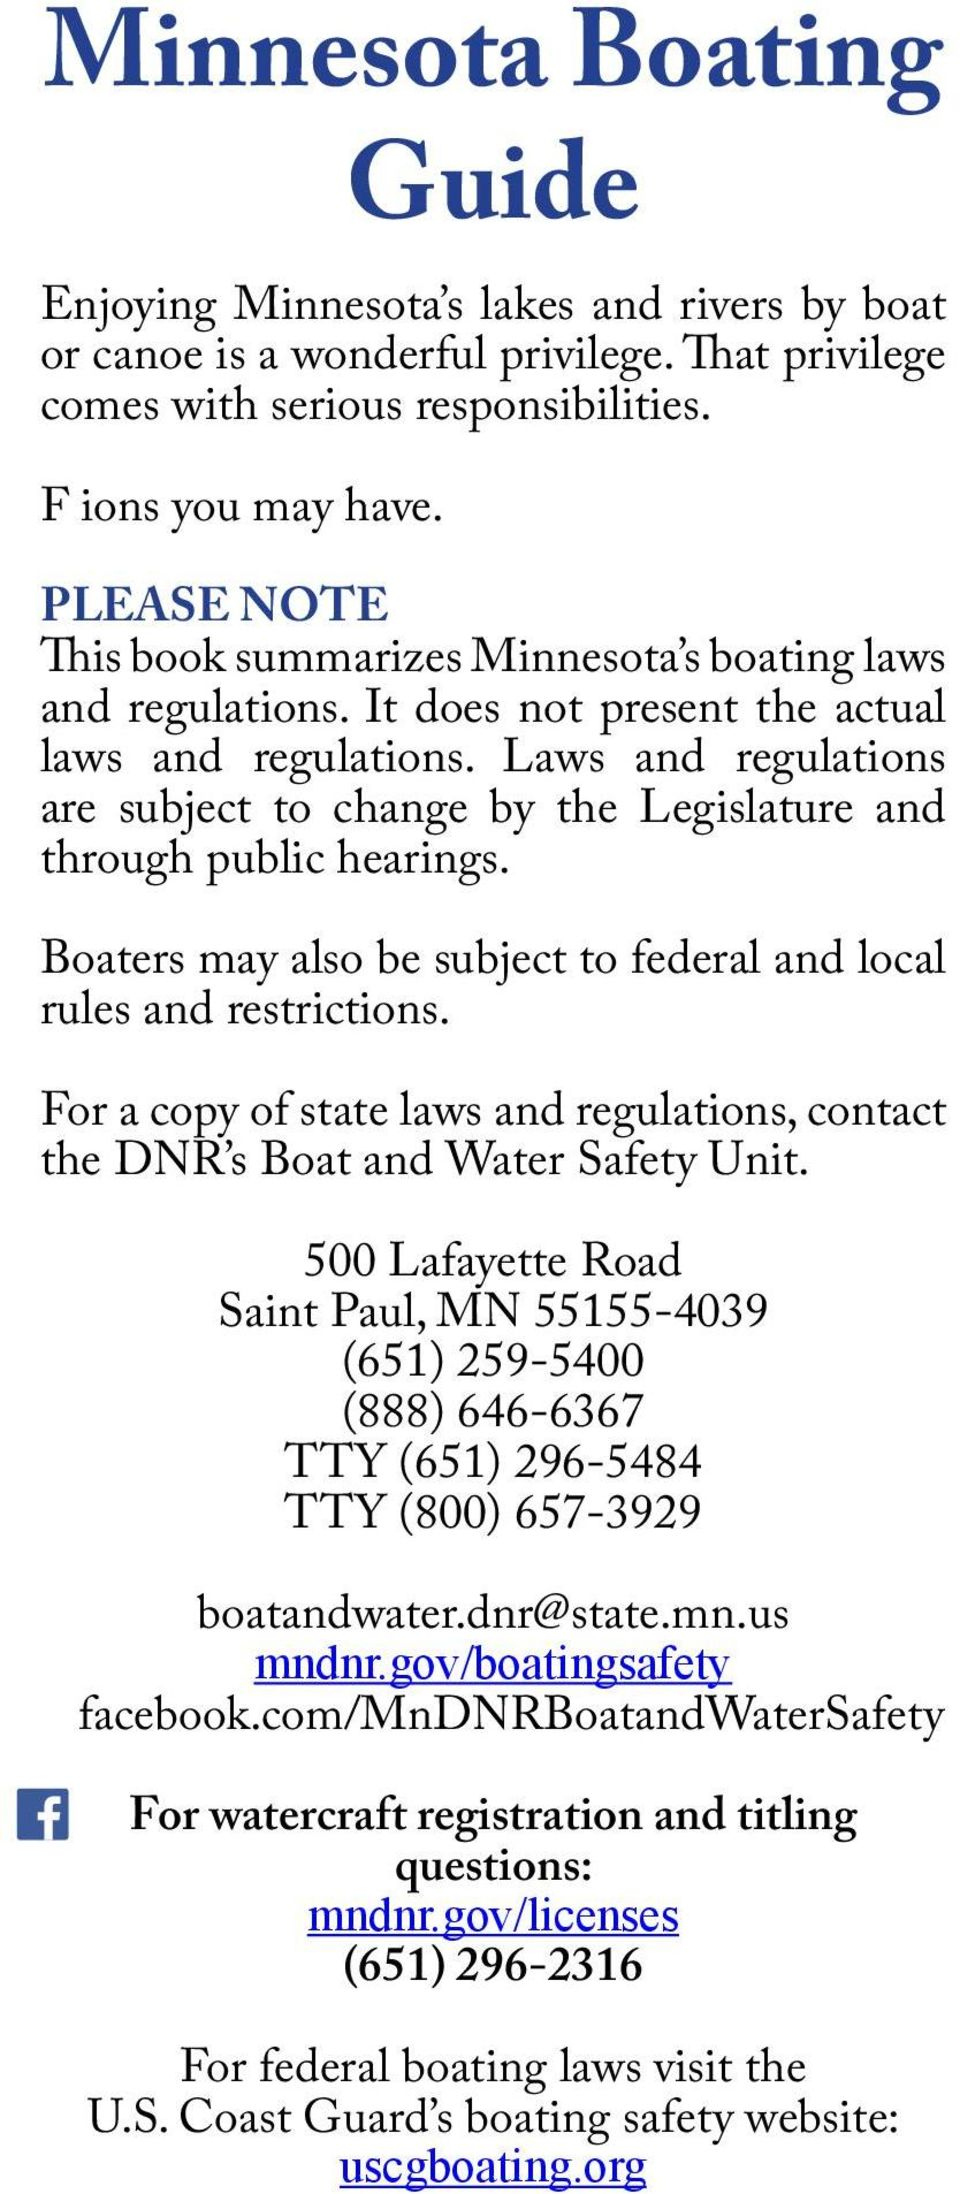 Laws and regulations are subject to change by the Legislature and through public hearings. Boaters may also be subject to federal and local rules and restrictions.